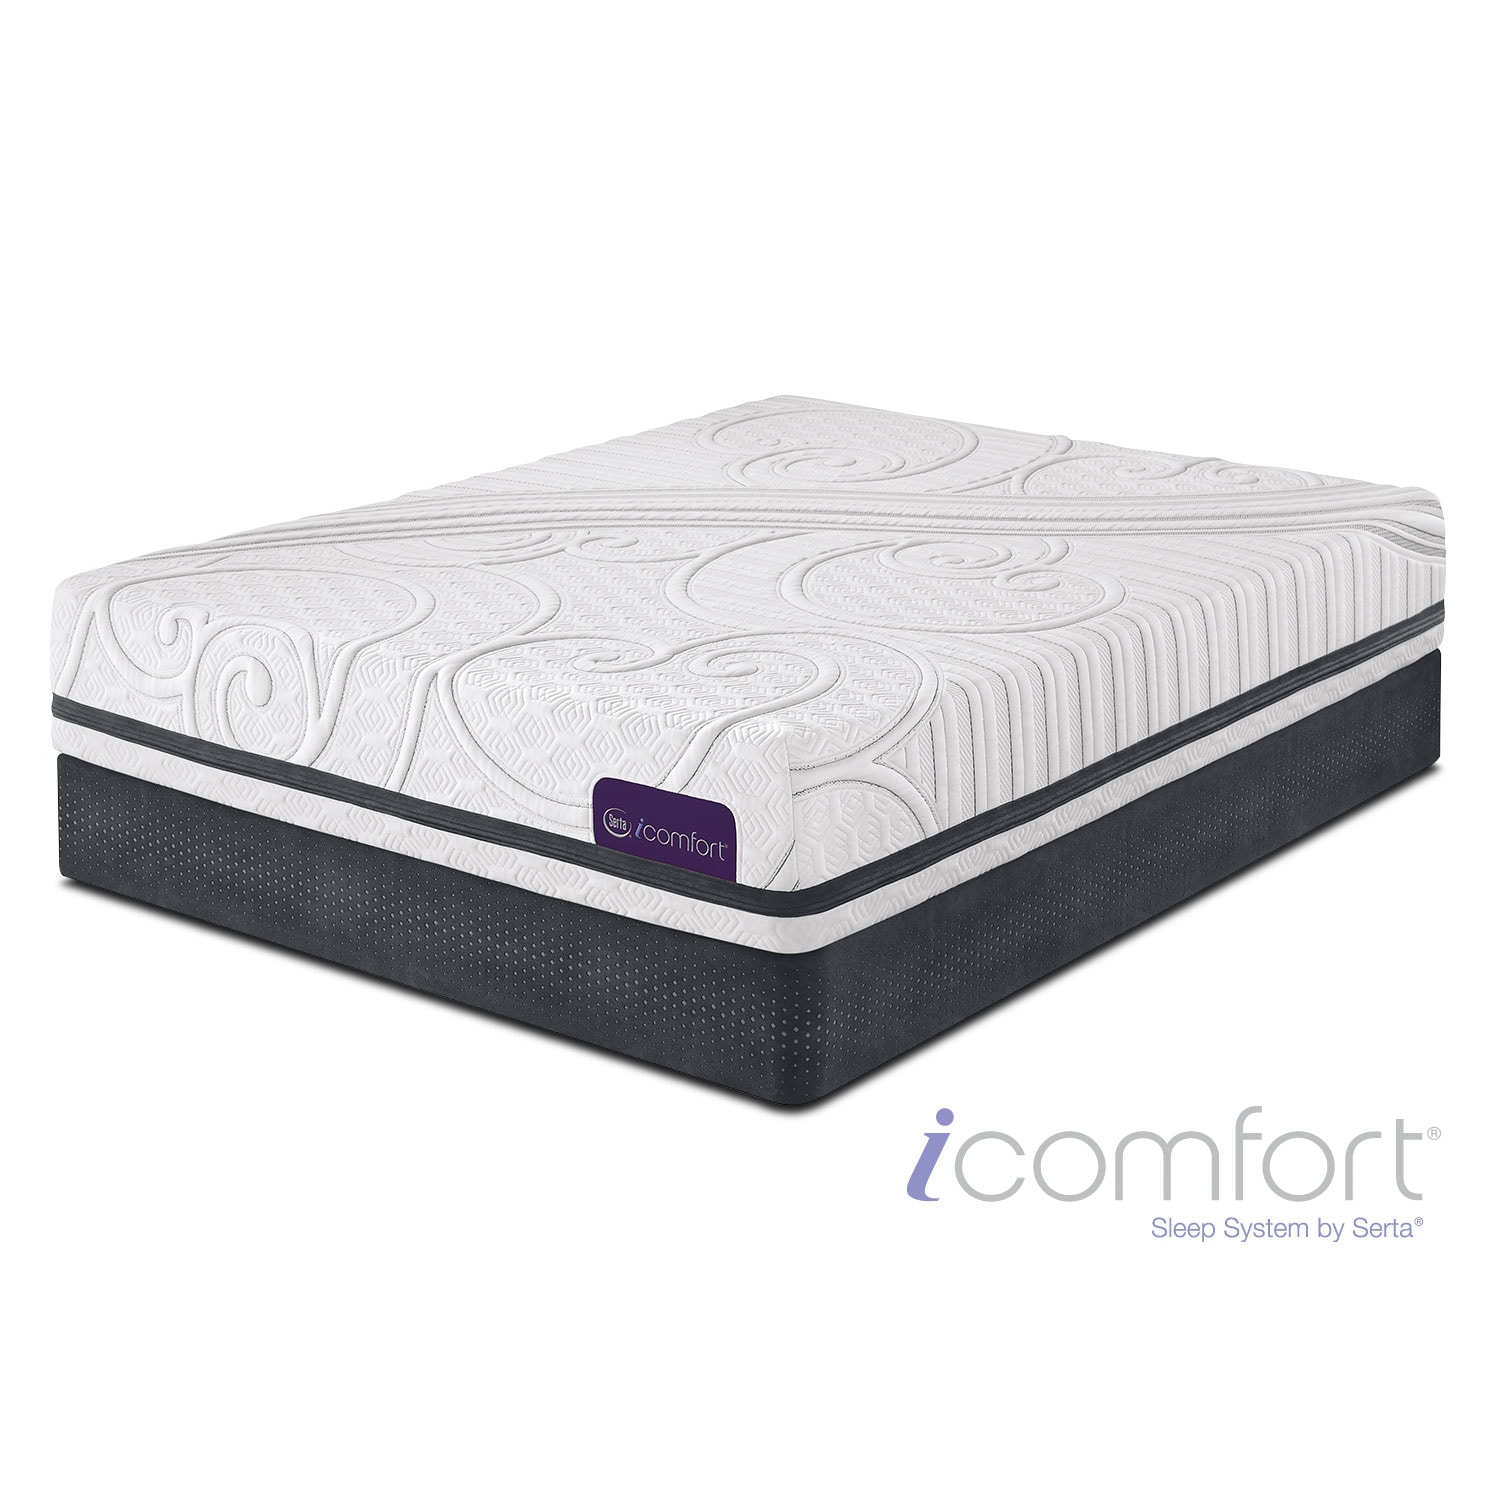 Mattresses and Bedding - Savant III Plush California King Mattress/Split Foundation Set